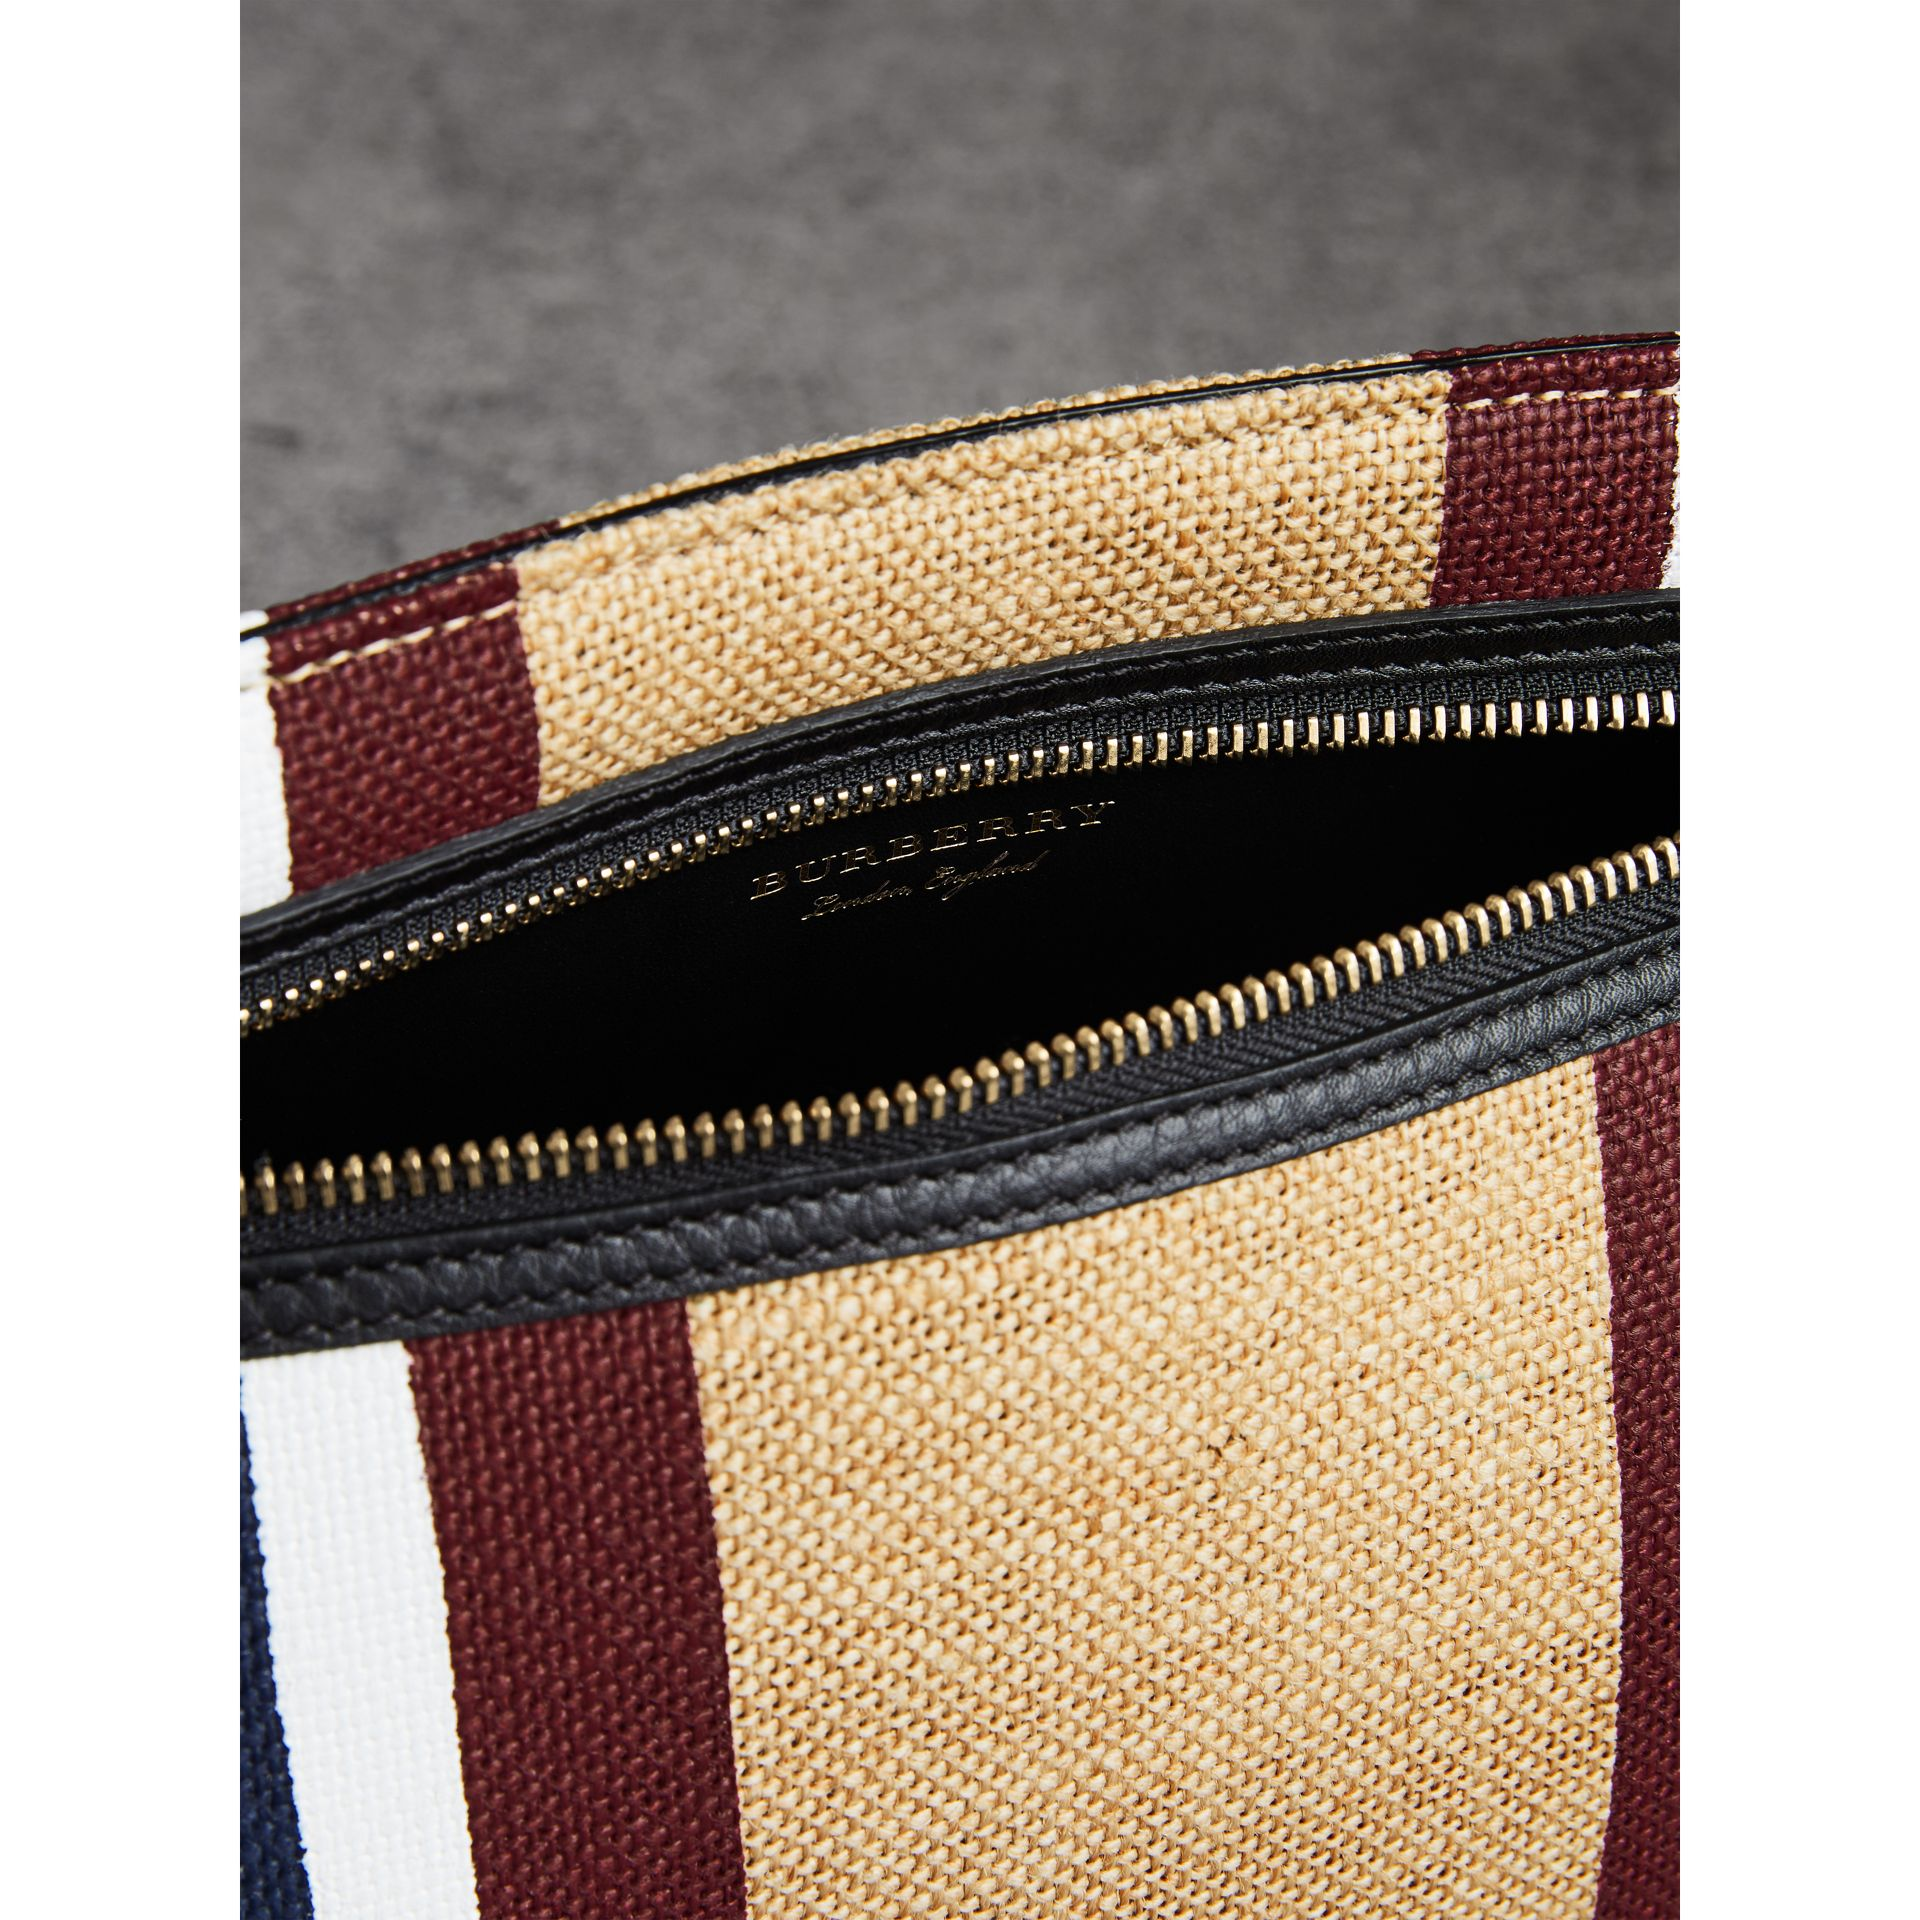 Striped Jute Wristlet Clutch in Black - Women | Burberry Singapore - gallery image 5